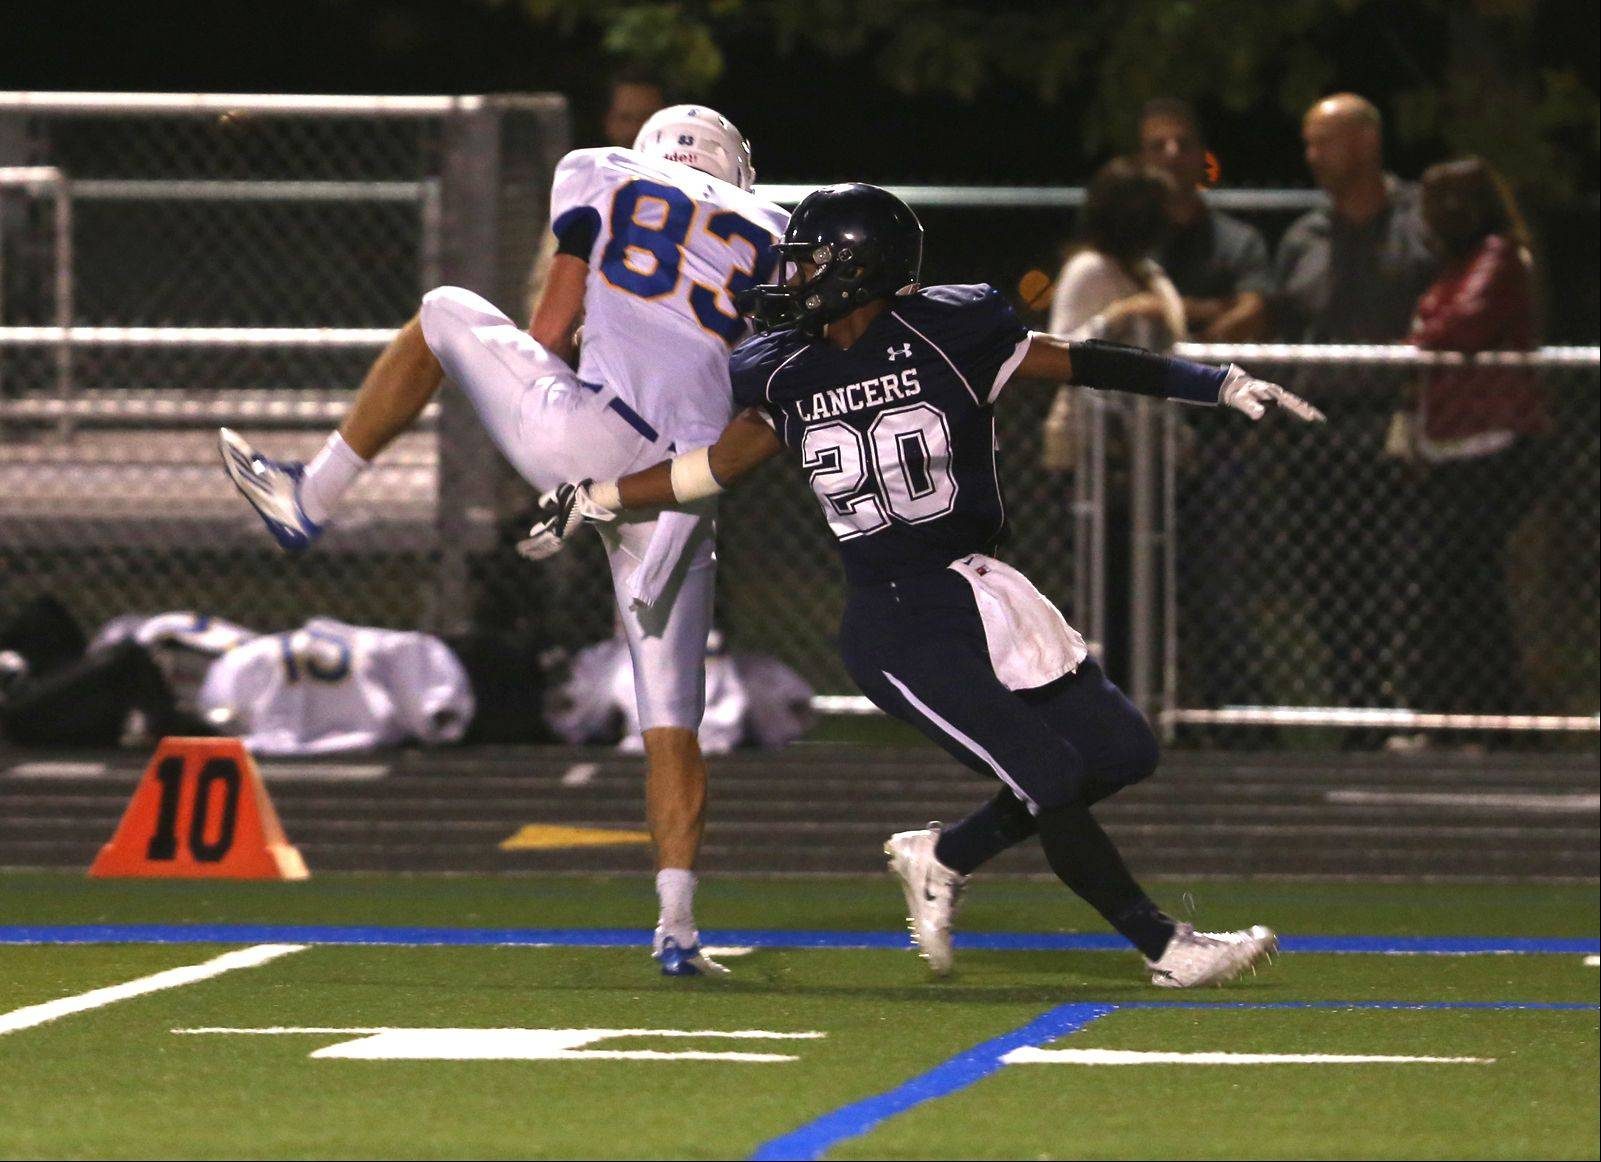 Images: Wheaton North vs. Lake Park football